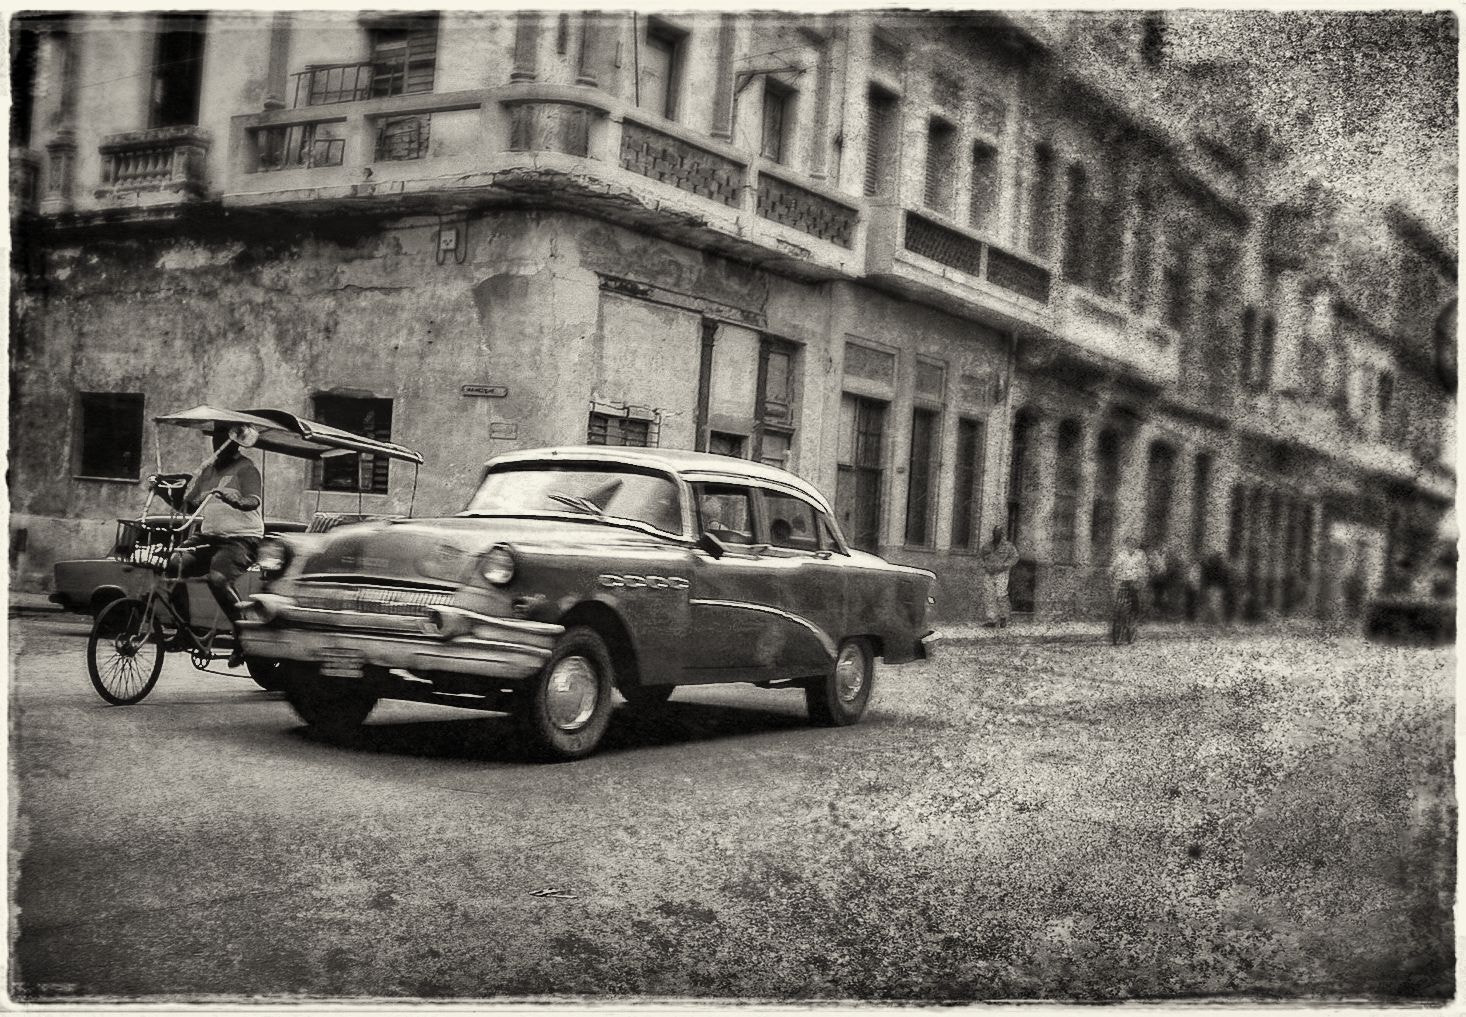 Photograph Habana Vieja by Luis Mariano González on 500px